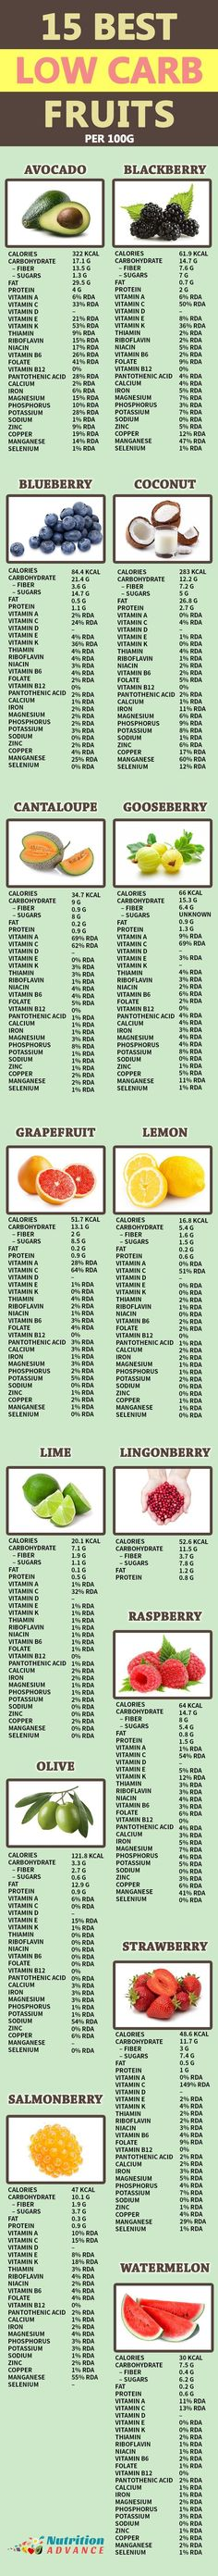 15 Best Low Carb Fruits. This article shows 15 of the fruits lowest in net carbs, along with their nutritional profile, health benefits, and more. Generally, each of these fruits is very low in net carbohydrate and suitable for low carb and paleo diets. Providing you are sensible with the portion size, they are also okay on a keto plan! See the full article here: http://nutritionadvance.com/low-carb-fruits